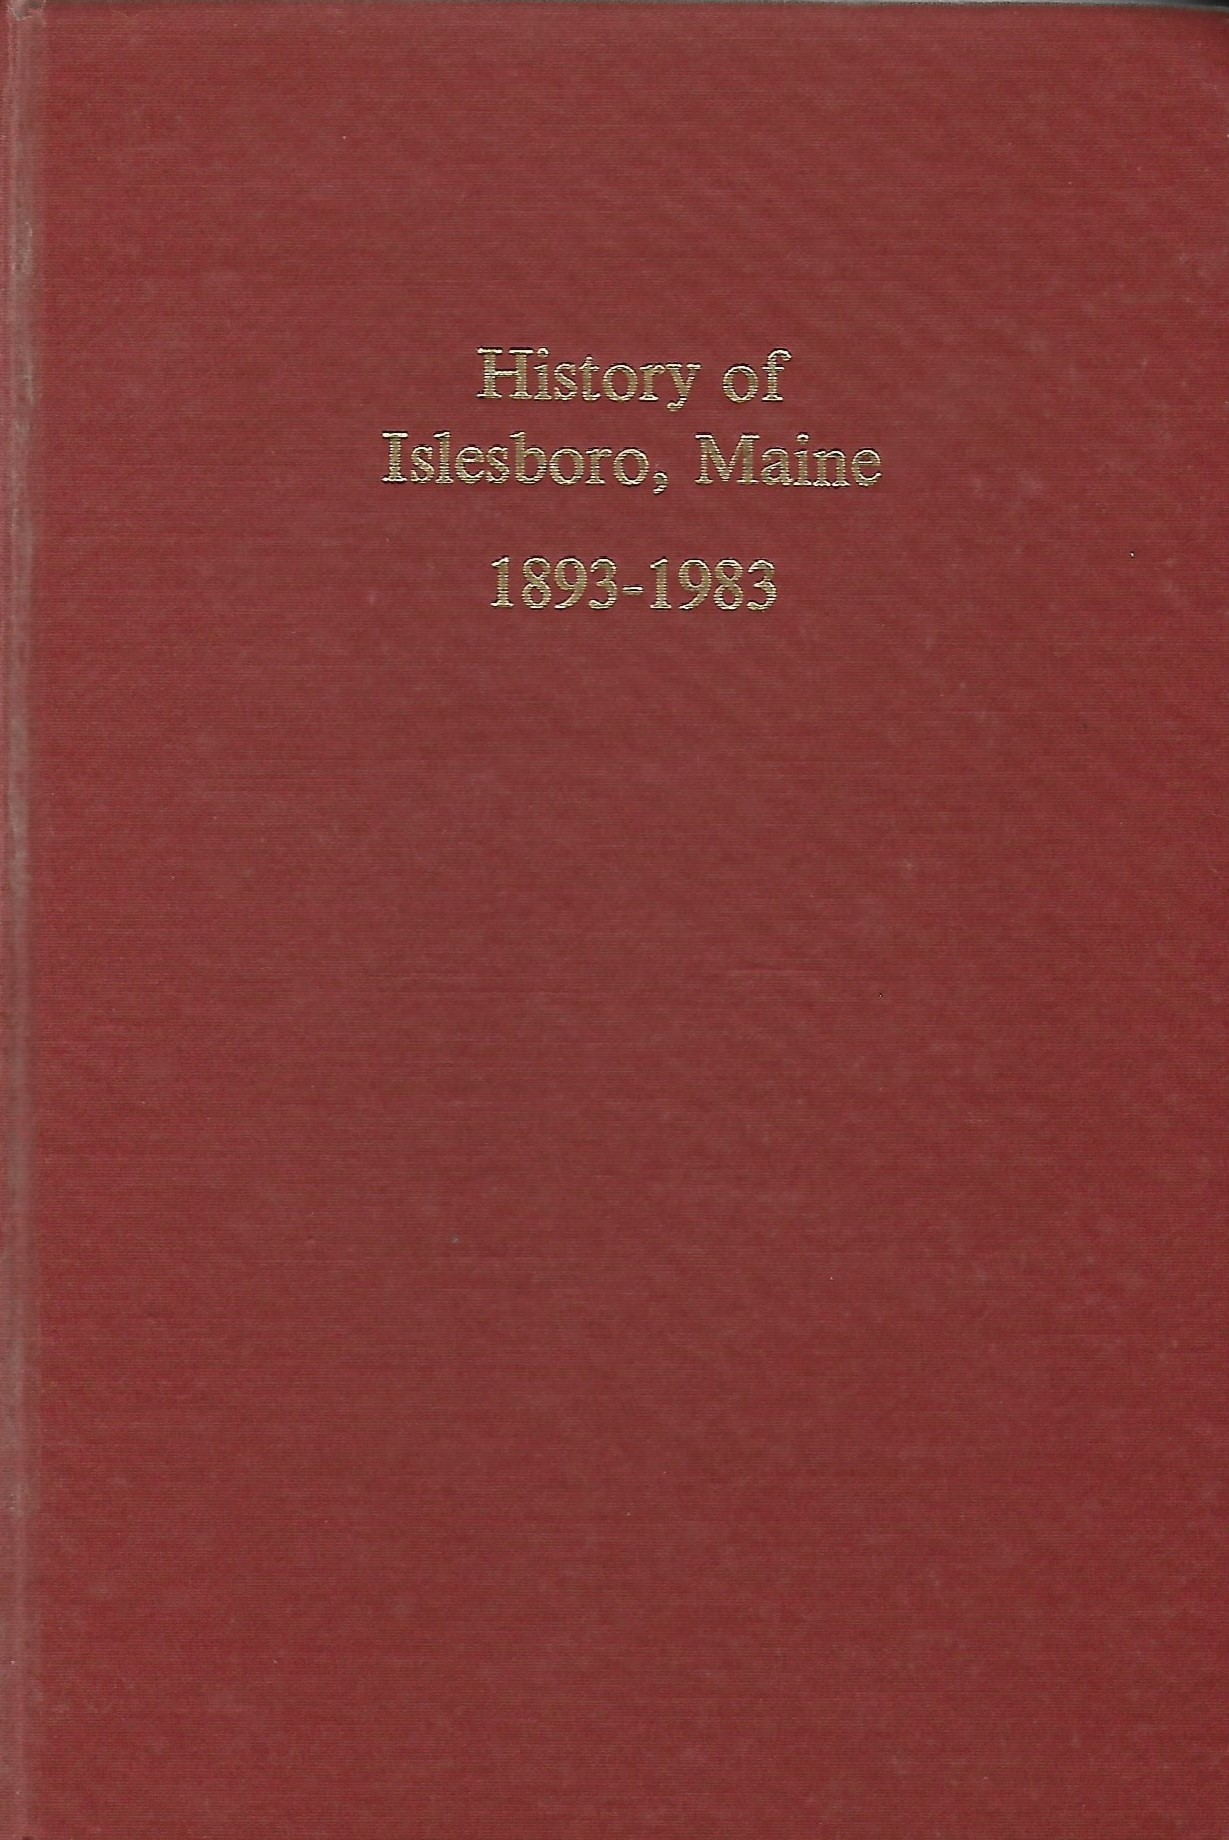 - This second History of Islesboro, commissioned by the Historical Society, was a true island-wide collaboration. Preserving and archiving stories from the island, this compilation updates Farrow's work with a collection of interviews, town reports, and other records.Author: Islesboro Historical Society Editorial BoardPrice: $37.91Plus Maine Sales Tax $2.09